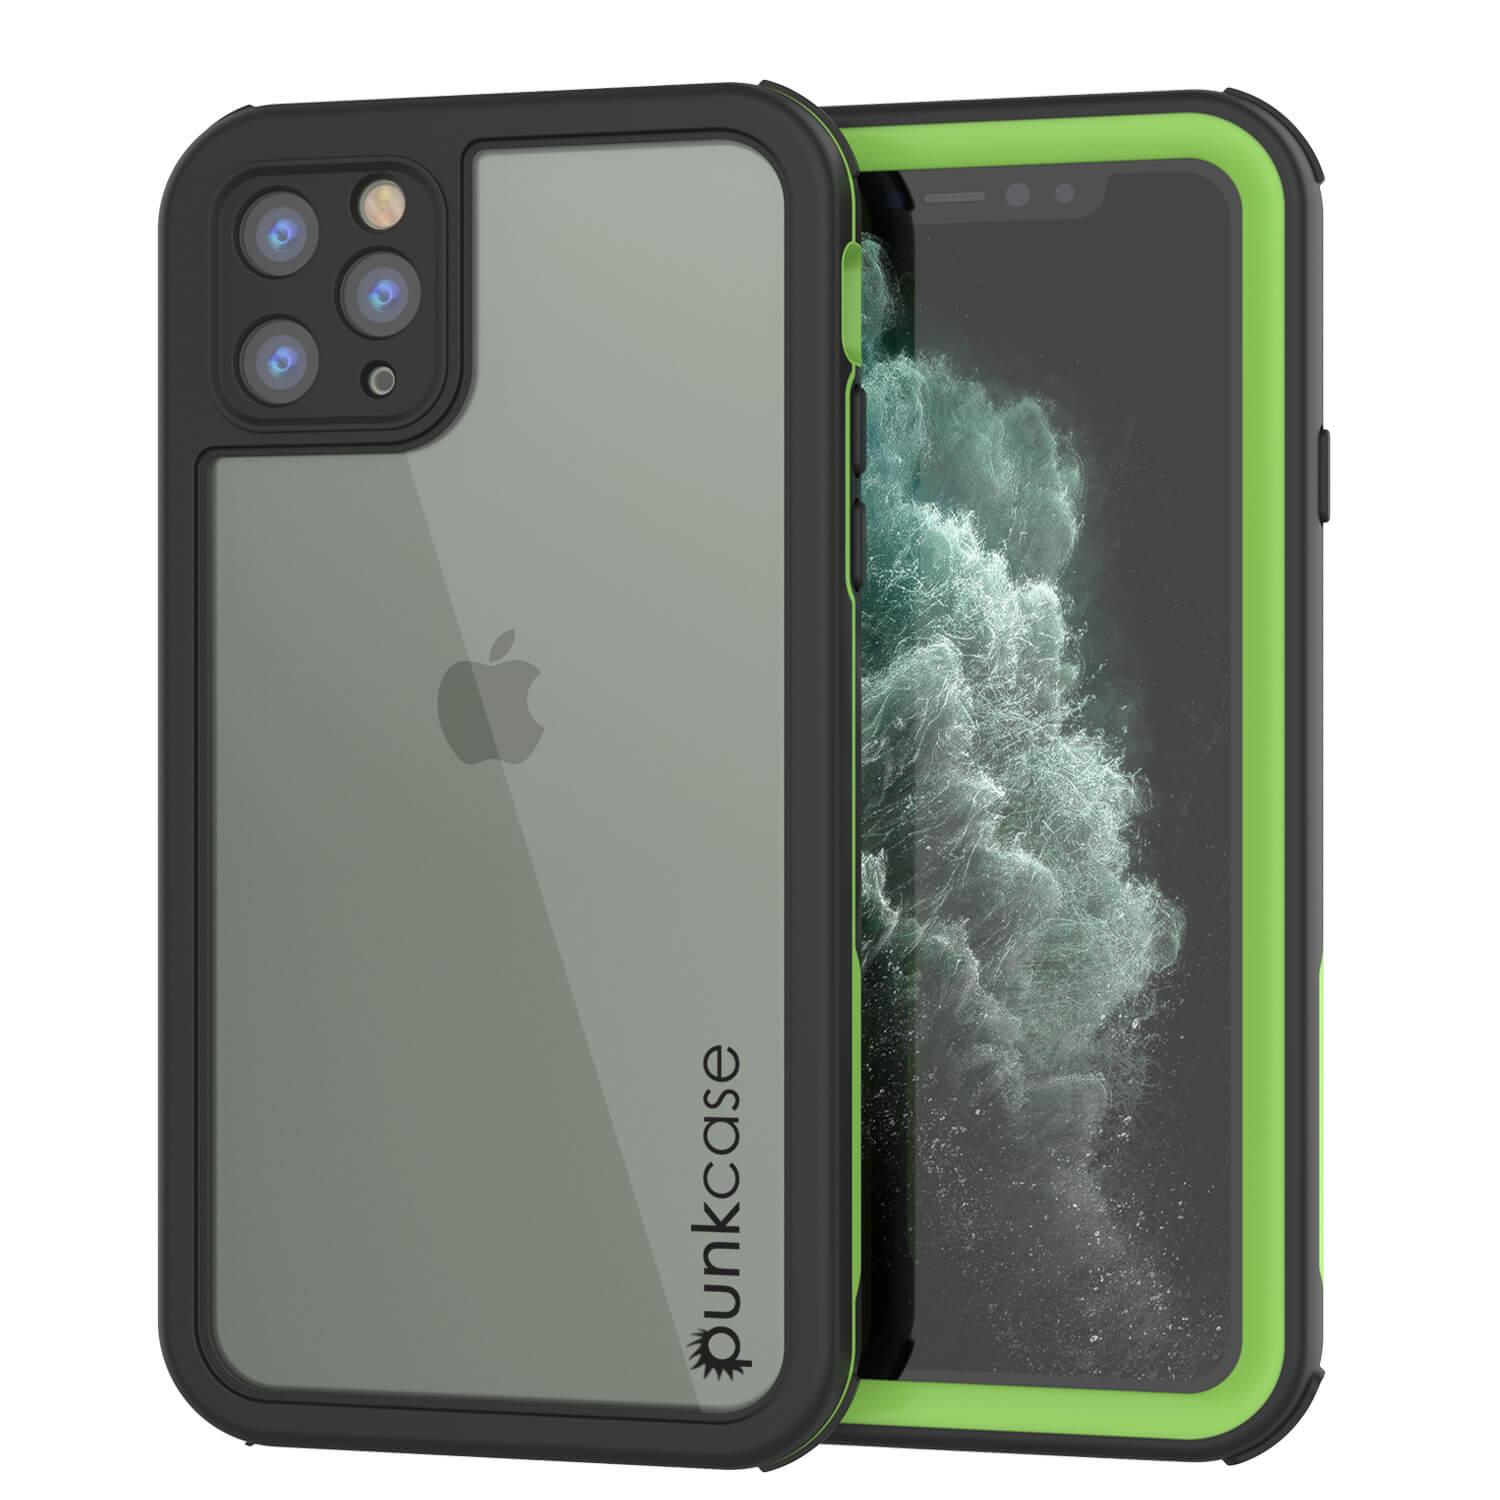 iPhone 11 Pro Max Waterproof IP68 Case, Punkcase [Green] [Rapture Series]  W/Built in Screen Protector